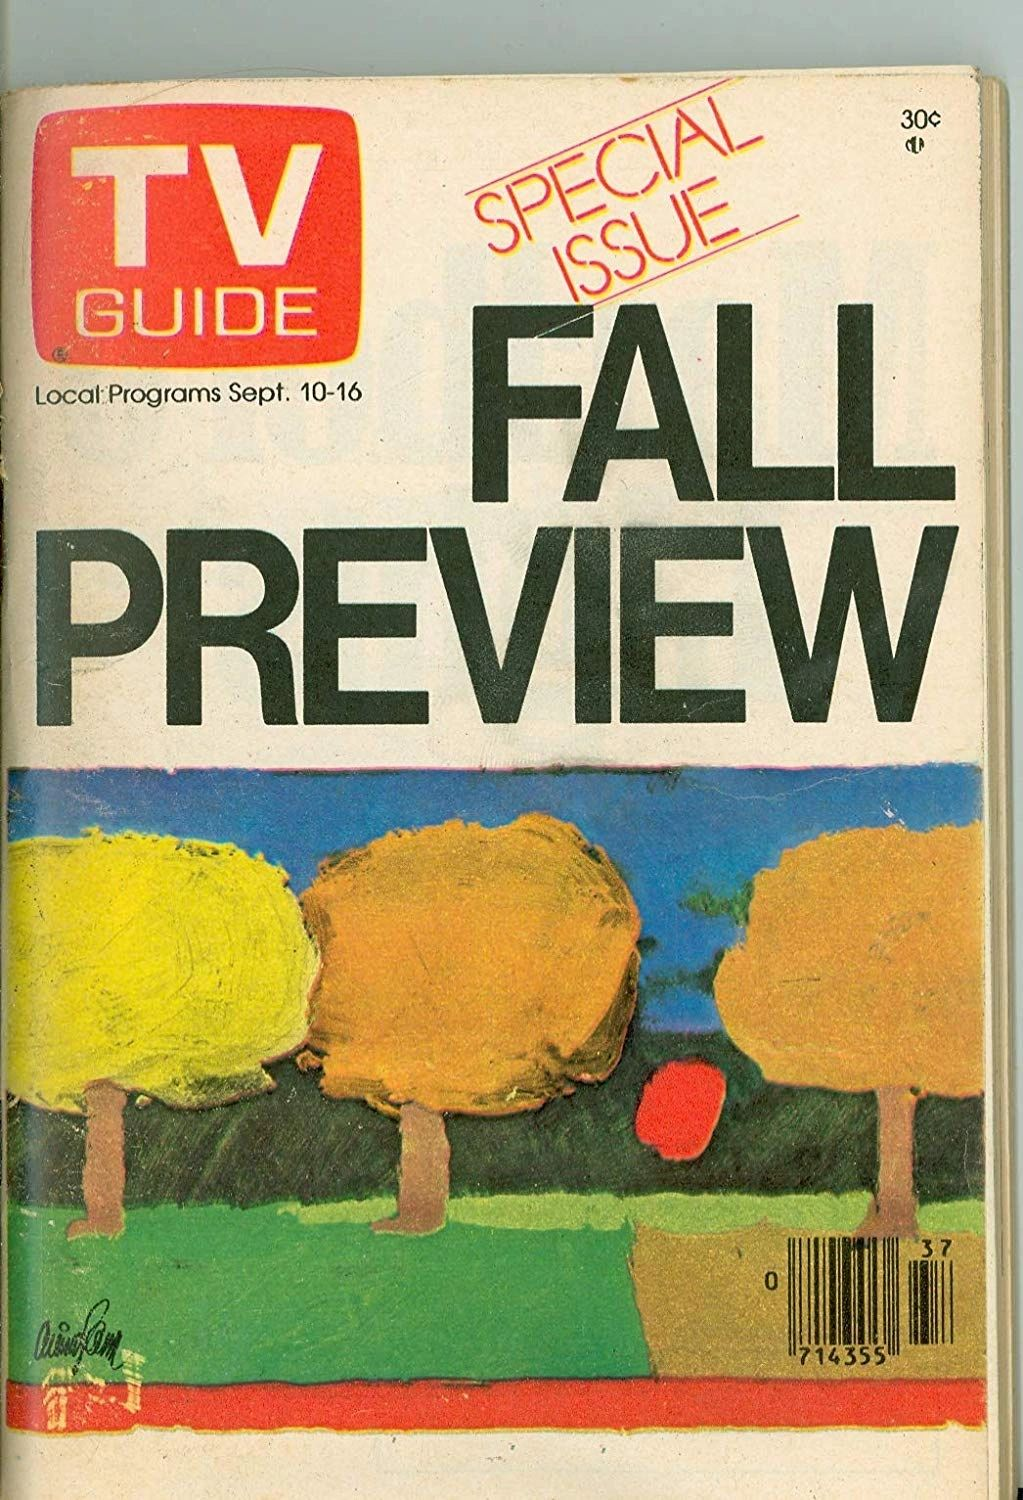 TV Guide Fall Preview cover 1977